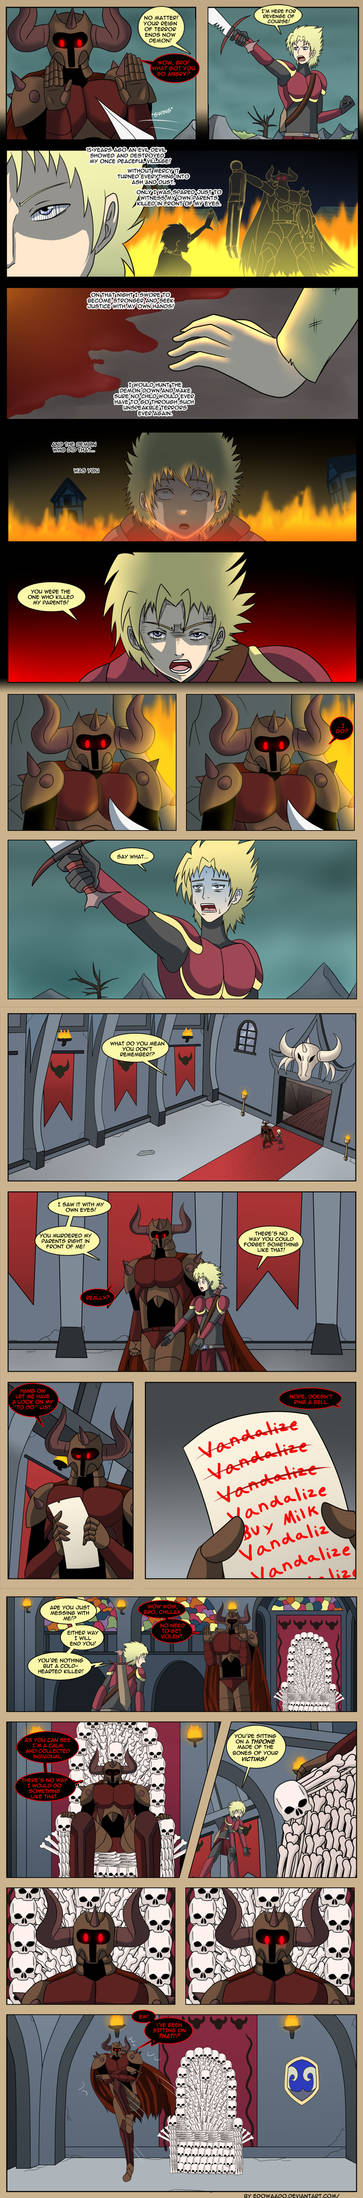 THE ADVENTURES OF THE DARK DEMON OVERLORD! Pt.2